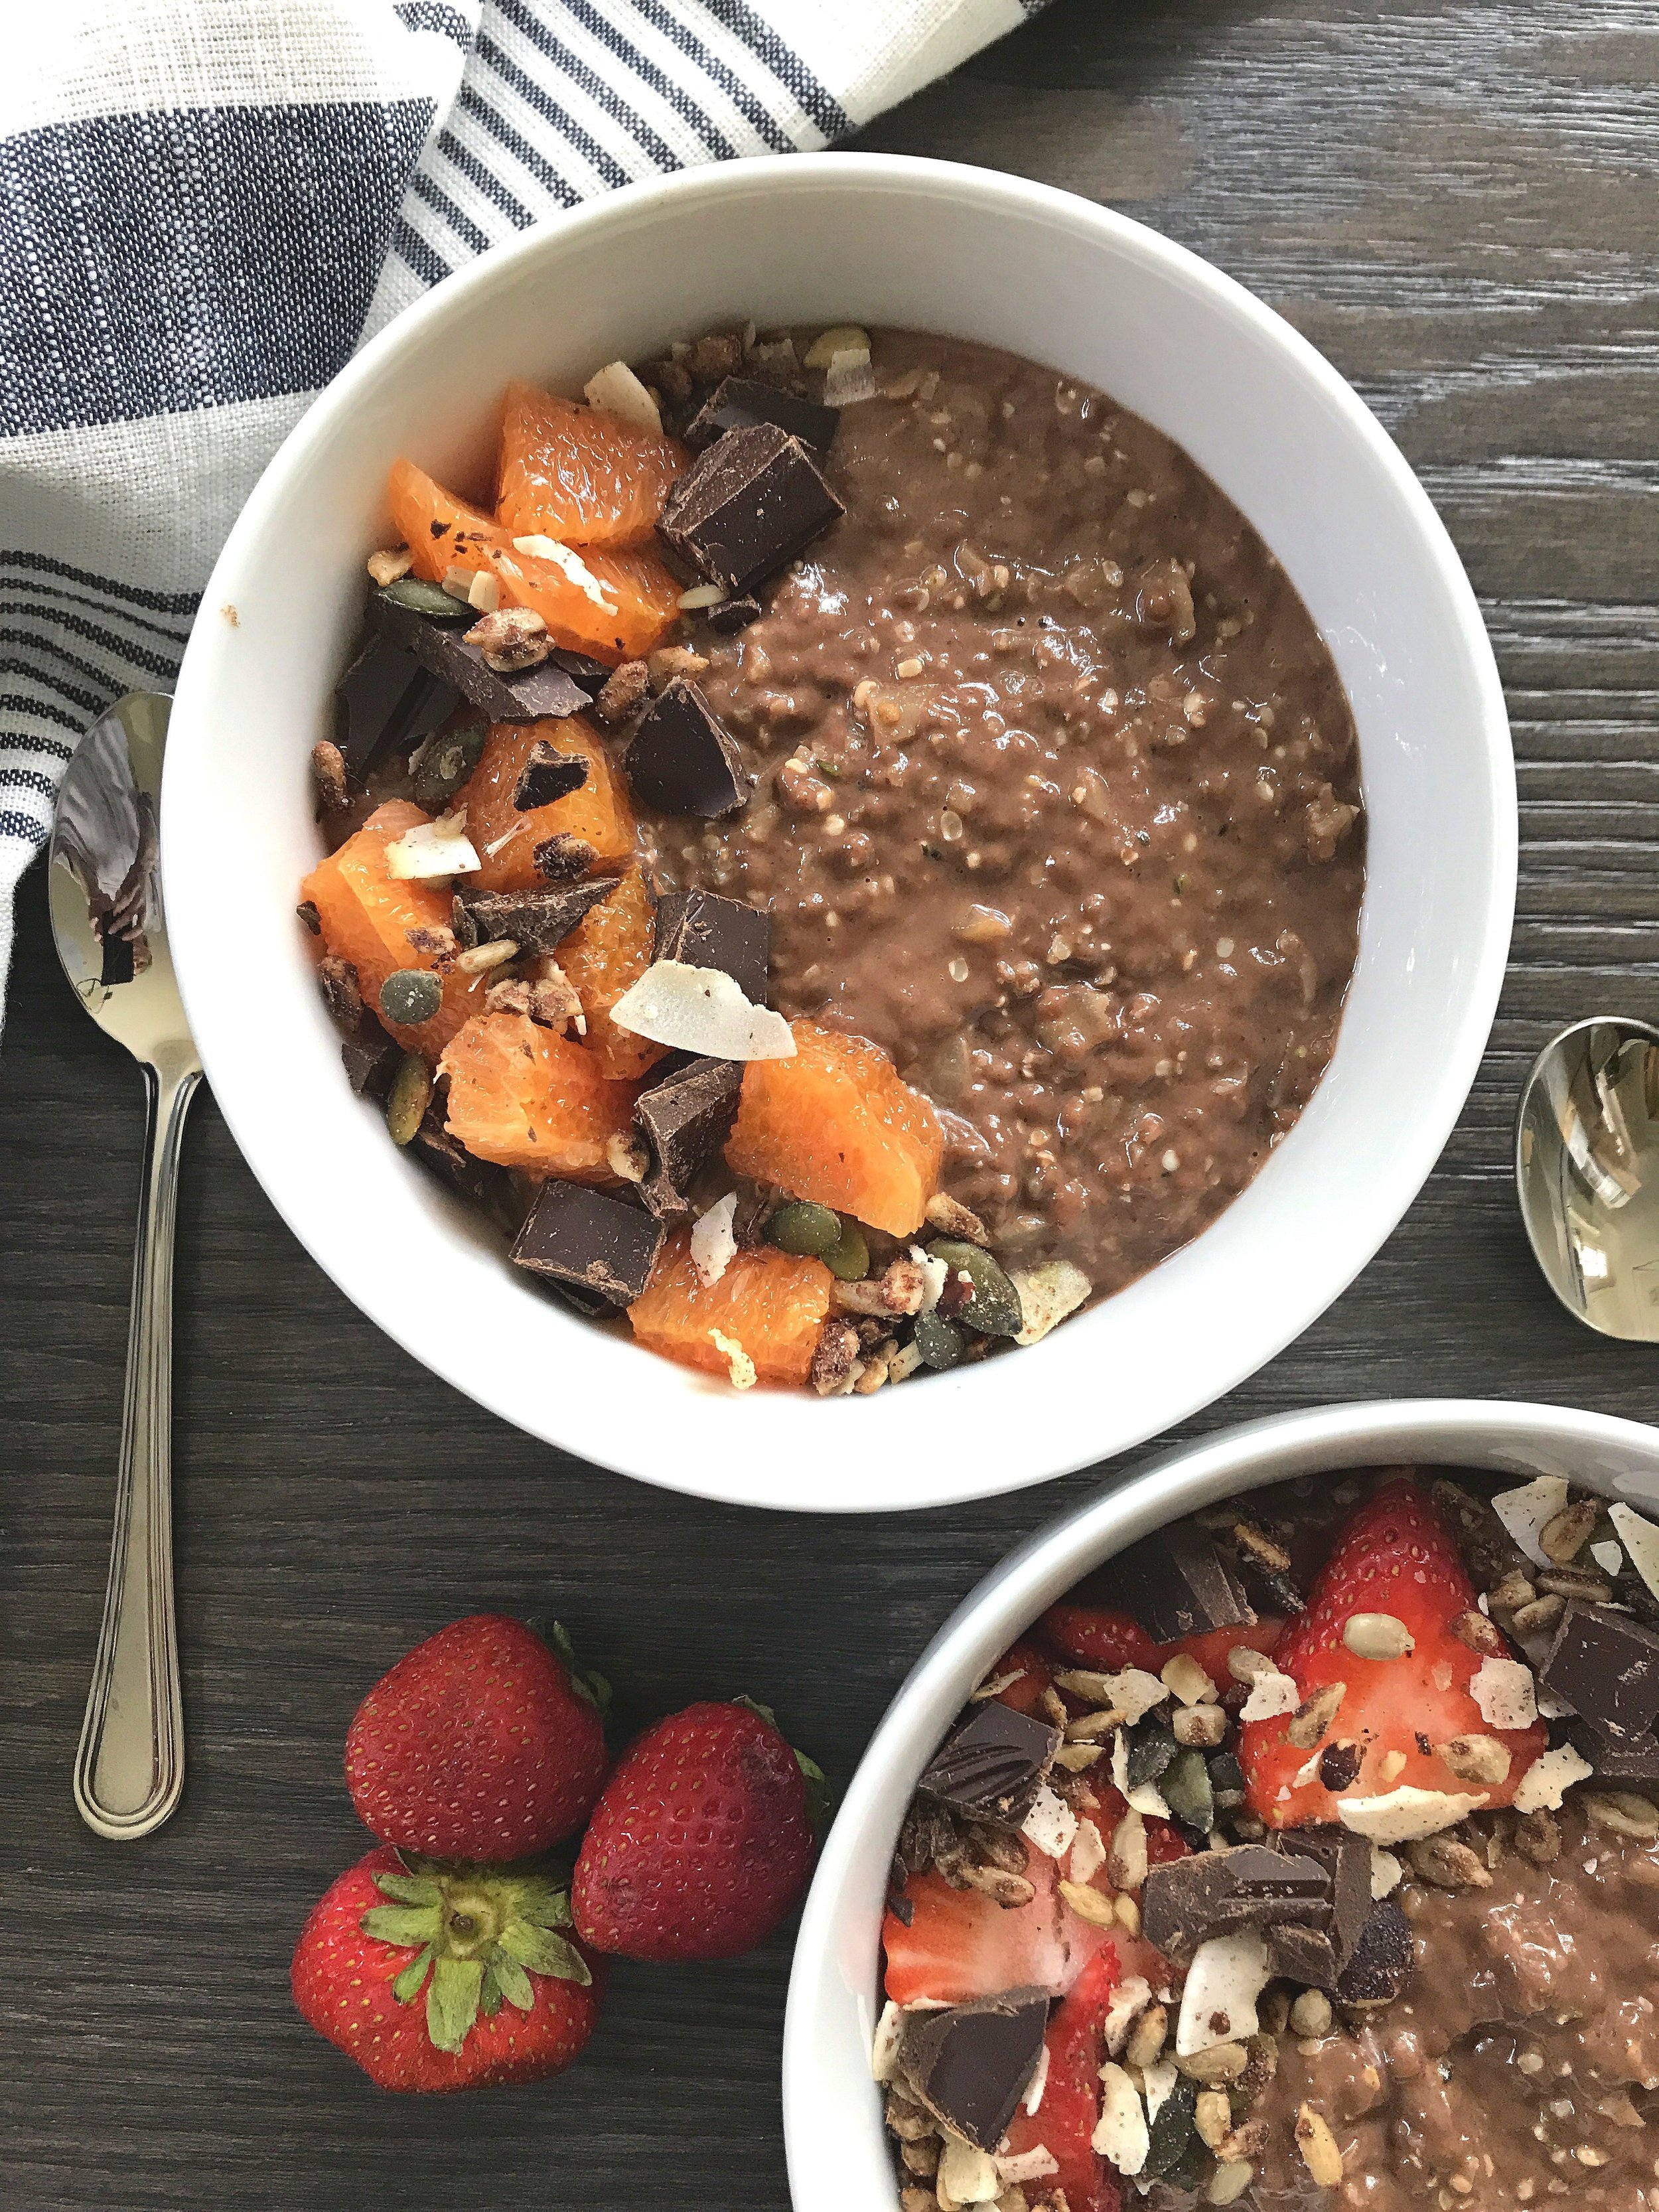 """Chocolate """"Risotto"""" without tiger nuts, topped with grain-free low-carb muesli, diced dark chocolate, Cara Cara orange, and strawberries."""